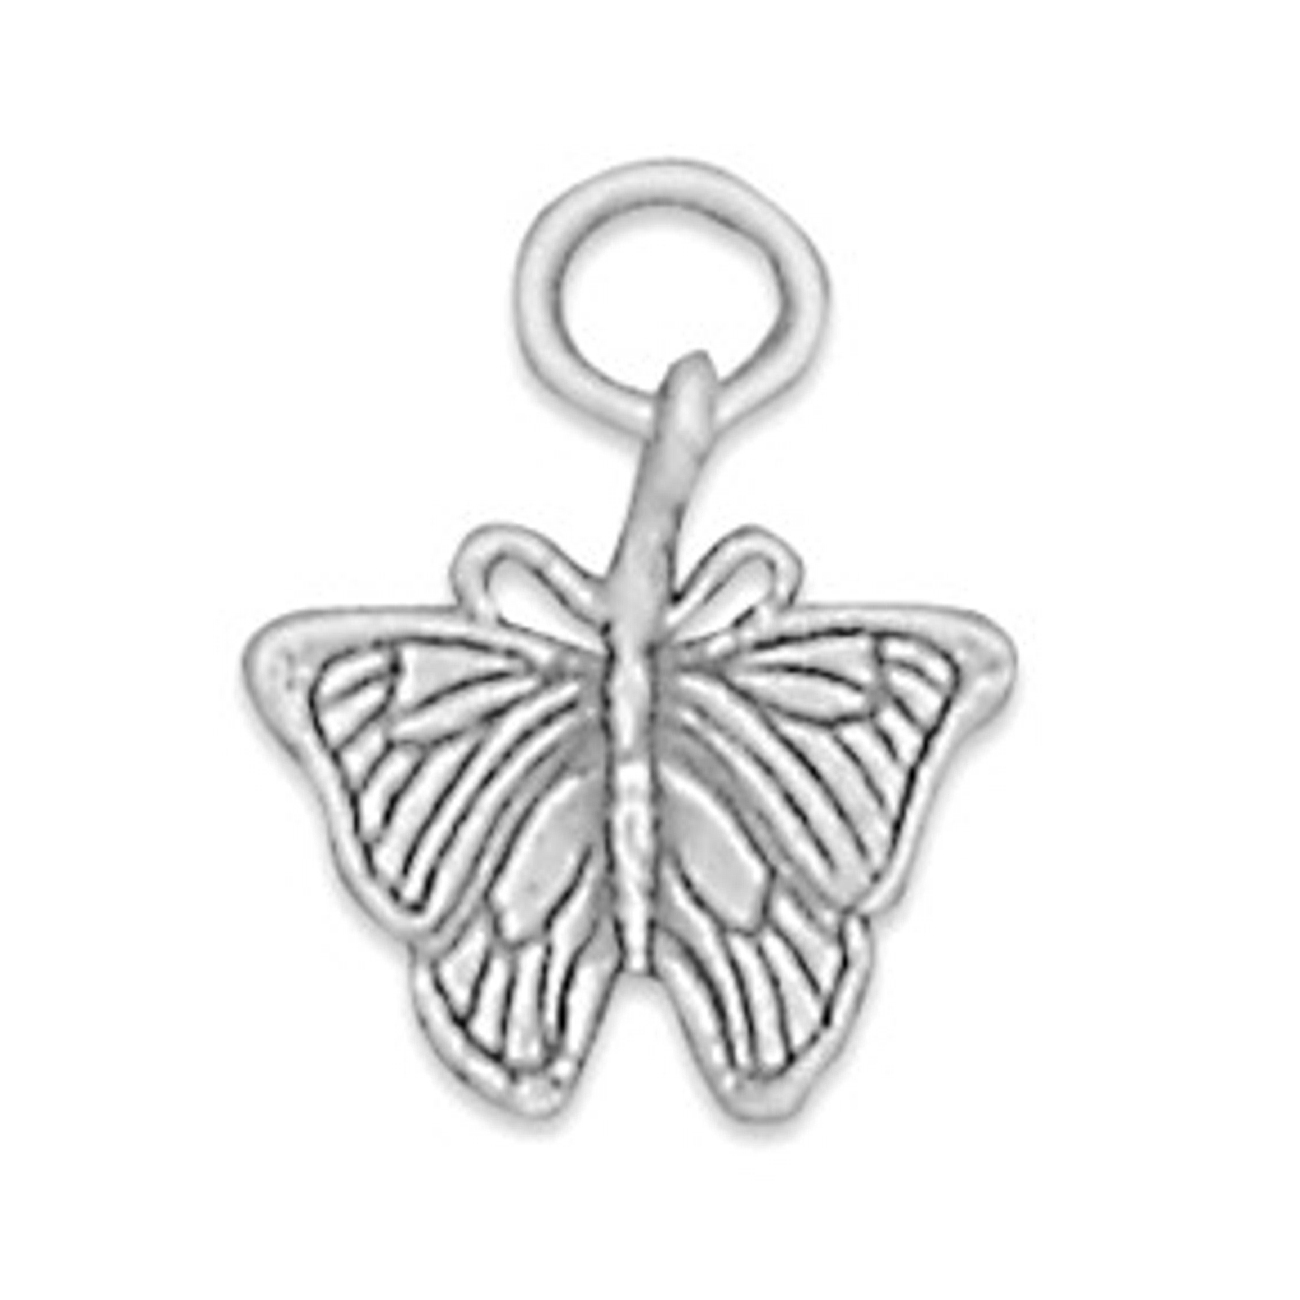 3D Bent Wing Butterfly Charm